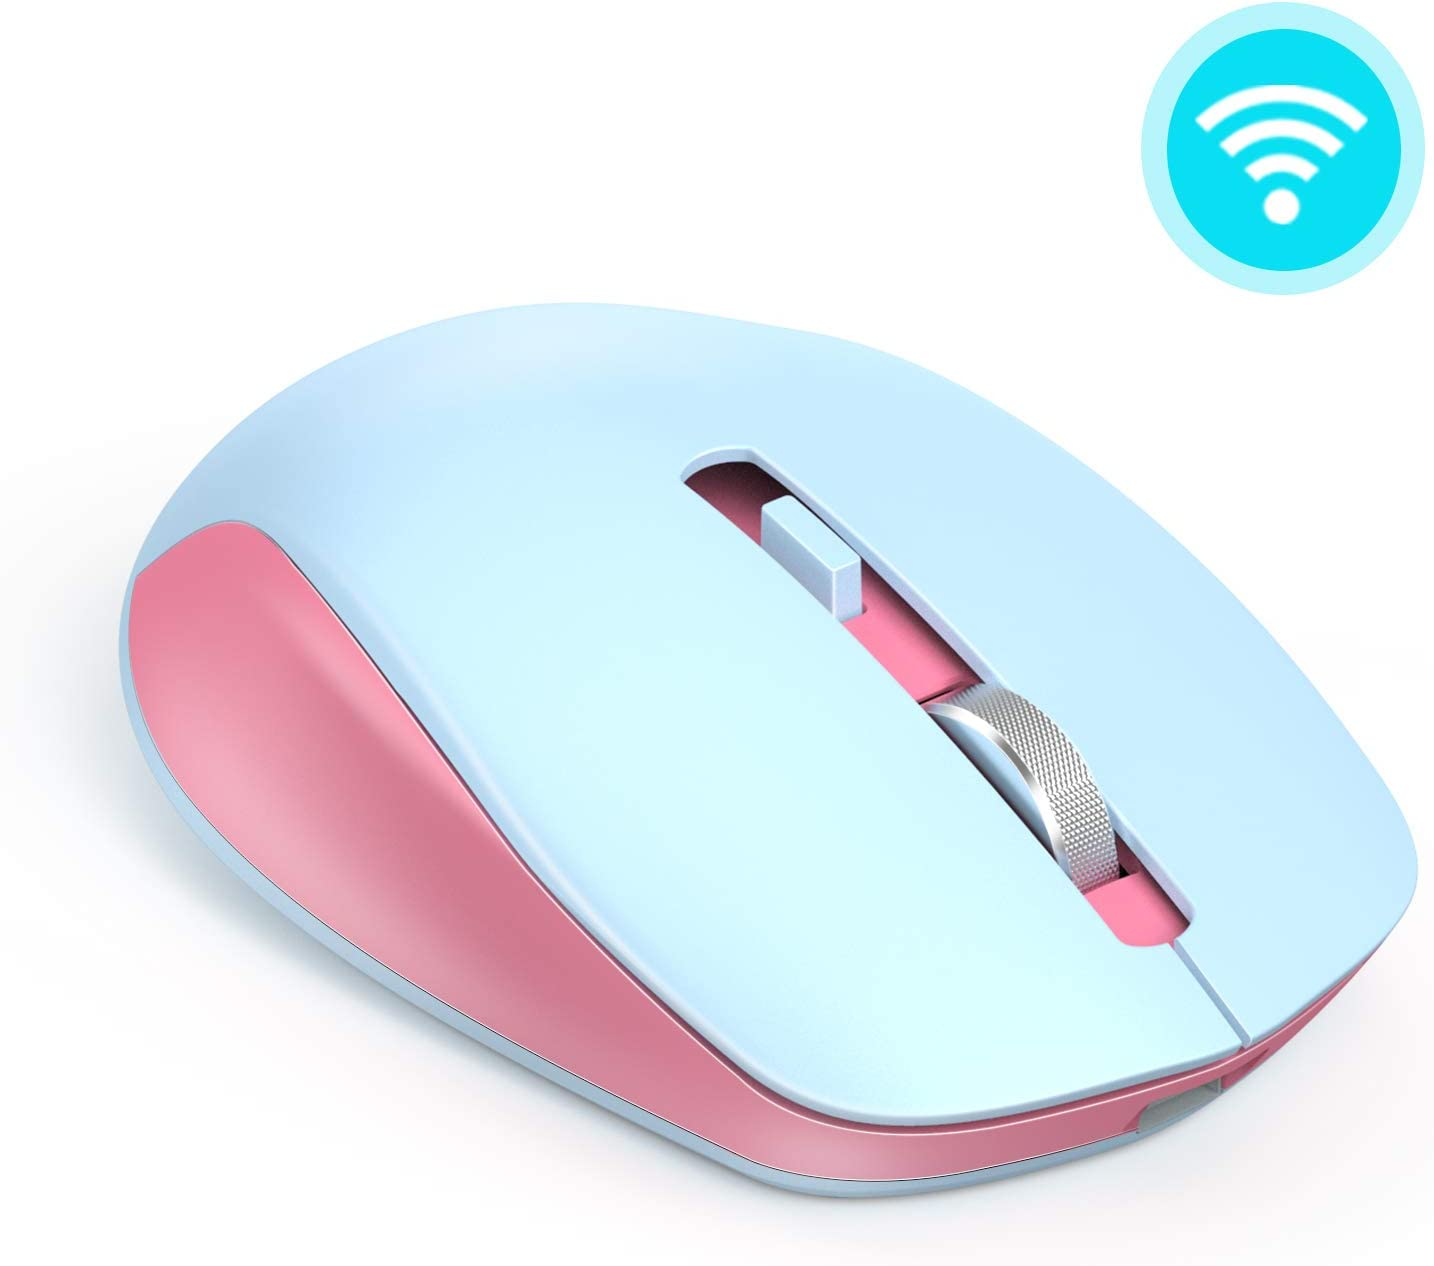 Wireless Mouse, seenda 2.4G Wireless Computer Mouse with Nano Receiver 3 Adjustable DPI Levels, Portable Mobile Optical Mice for Laptop, PC, Chromebook, Computer, Notebook, Pink & Blue